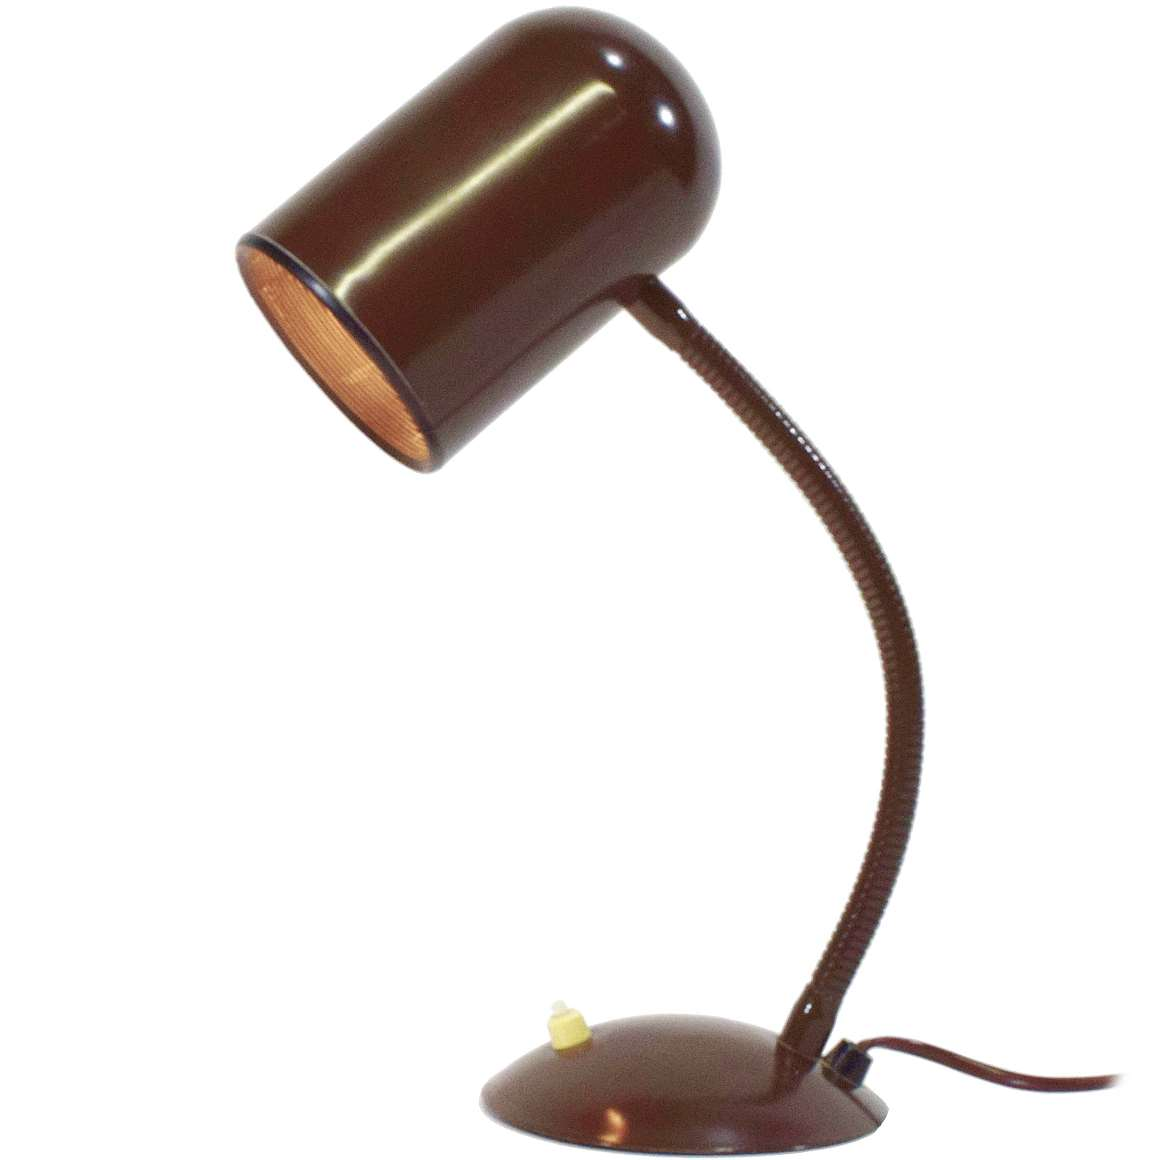 1970s Gooseneck Desk Lamp Vintage Info All About